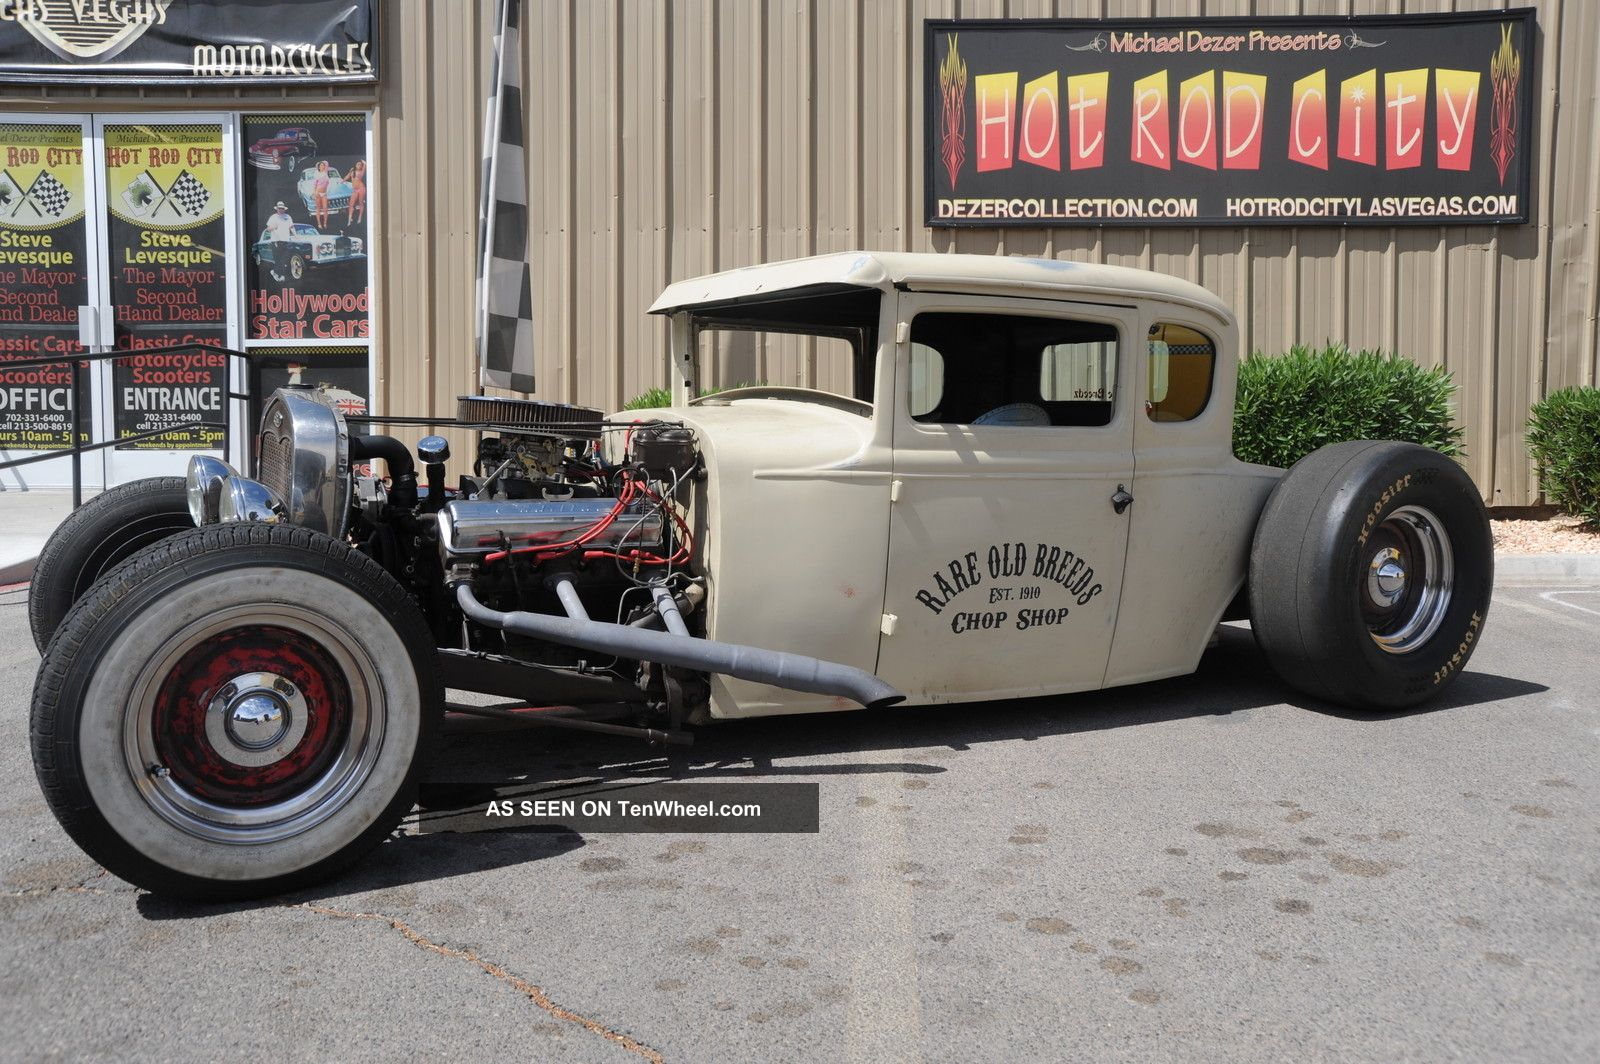 1930 ford rat rod fresh caddy 331 v8 turbo 350 disc. Black Bedroom Furniture Sets. Home Design Ideas